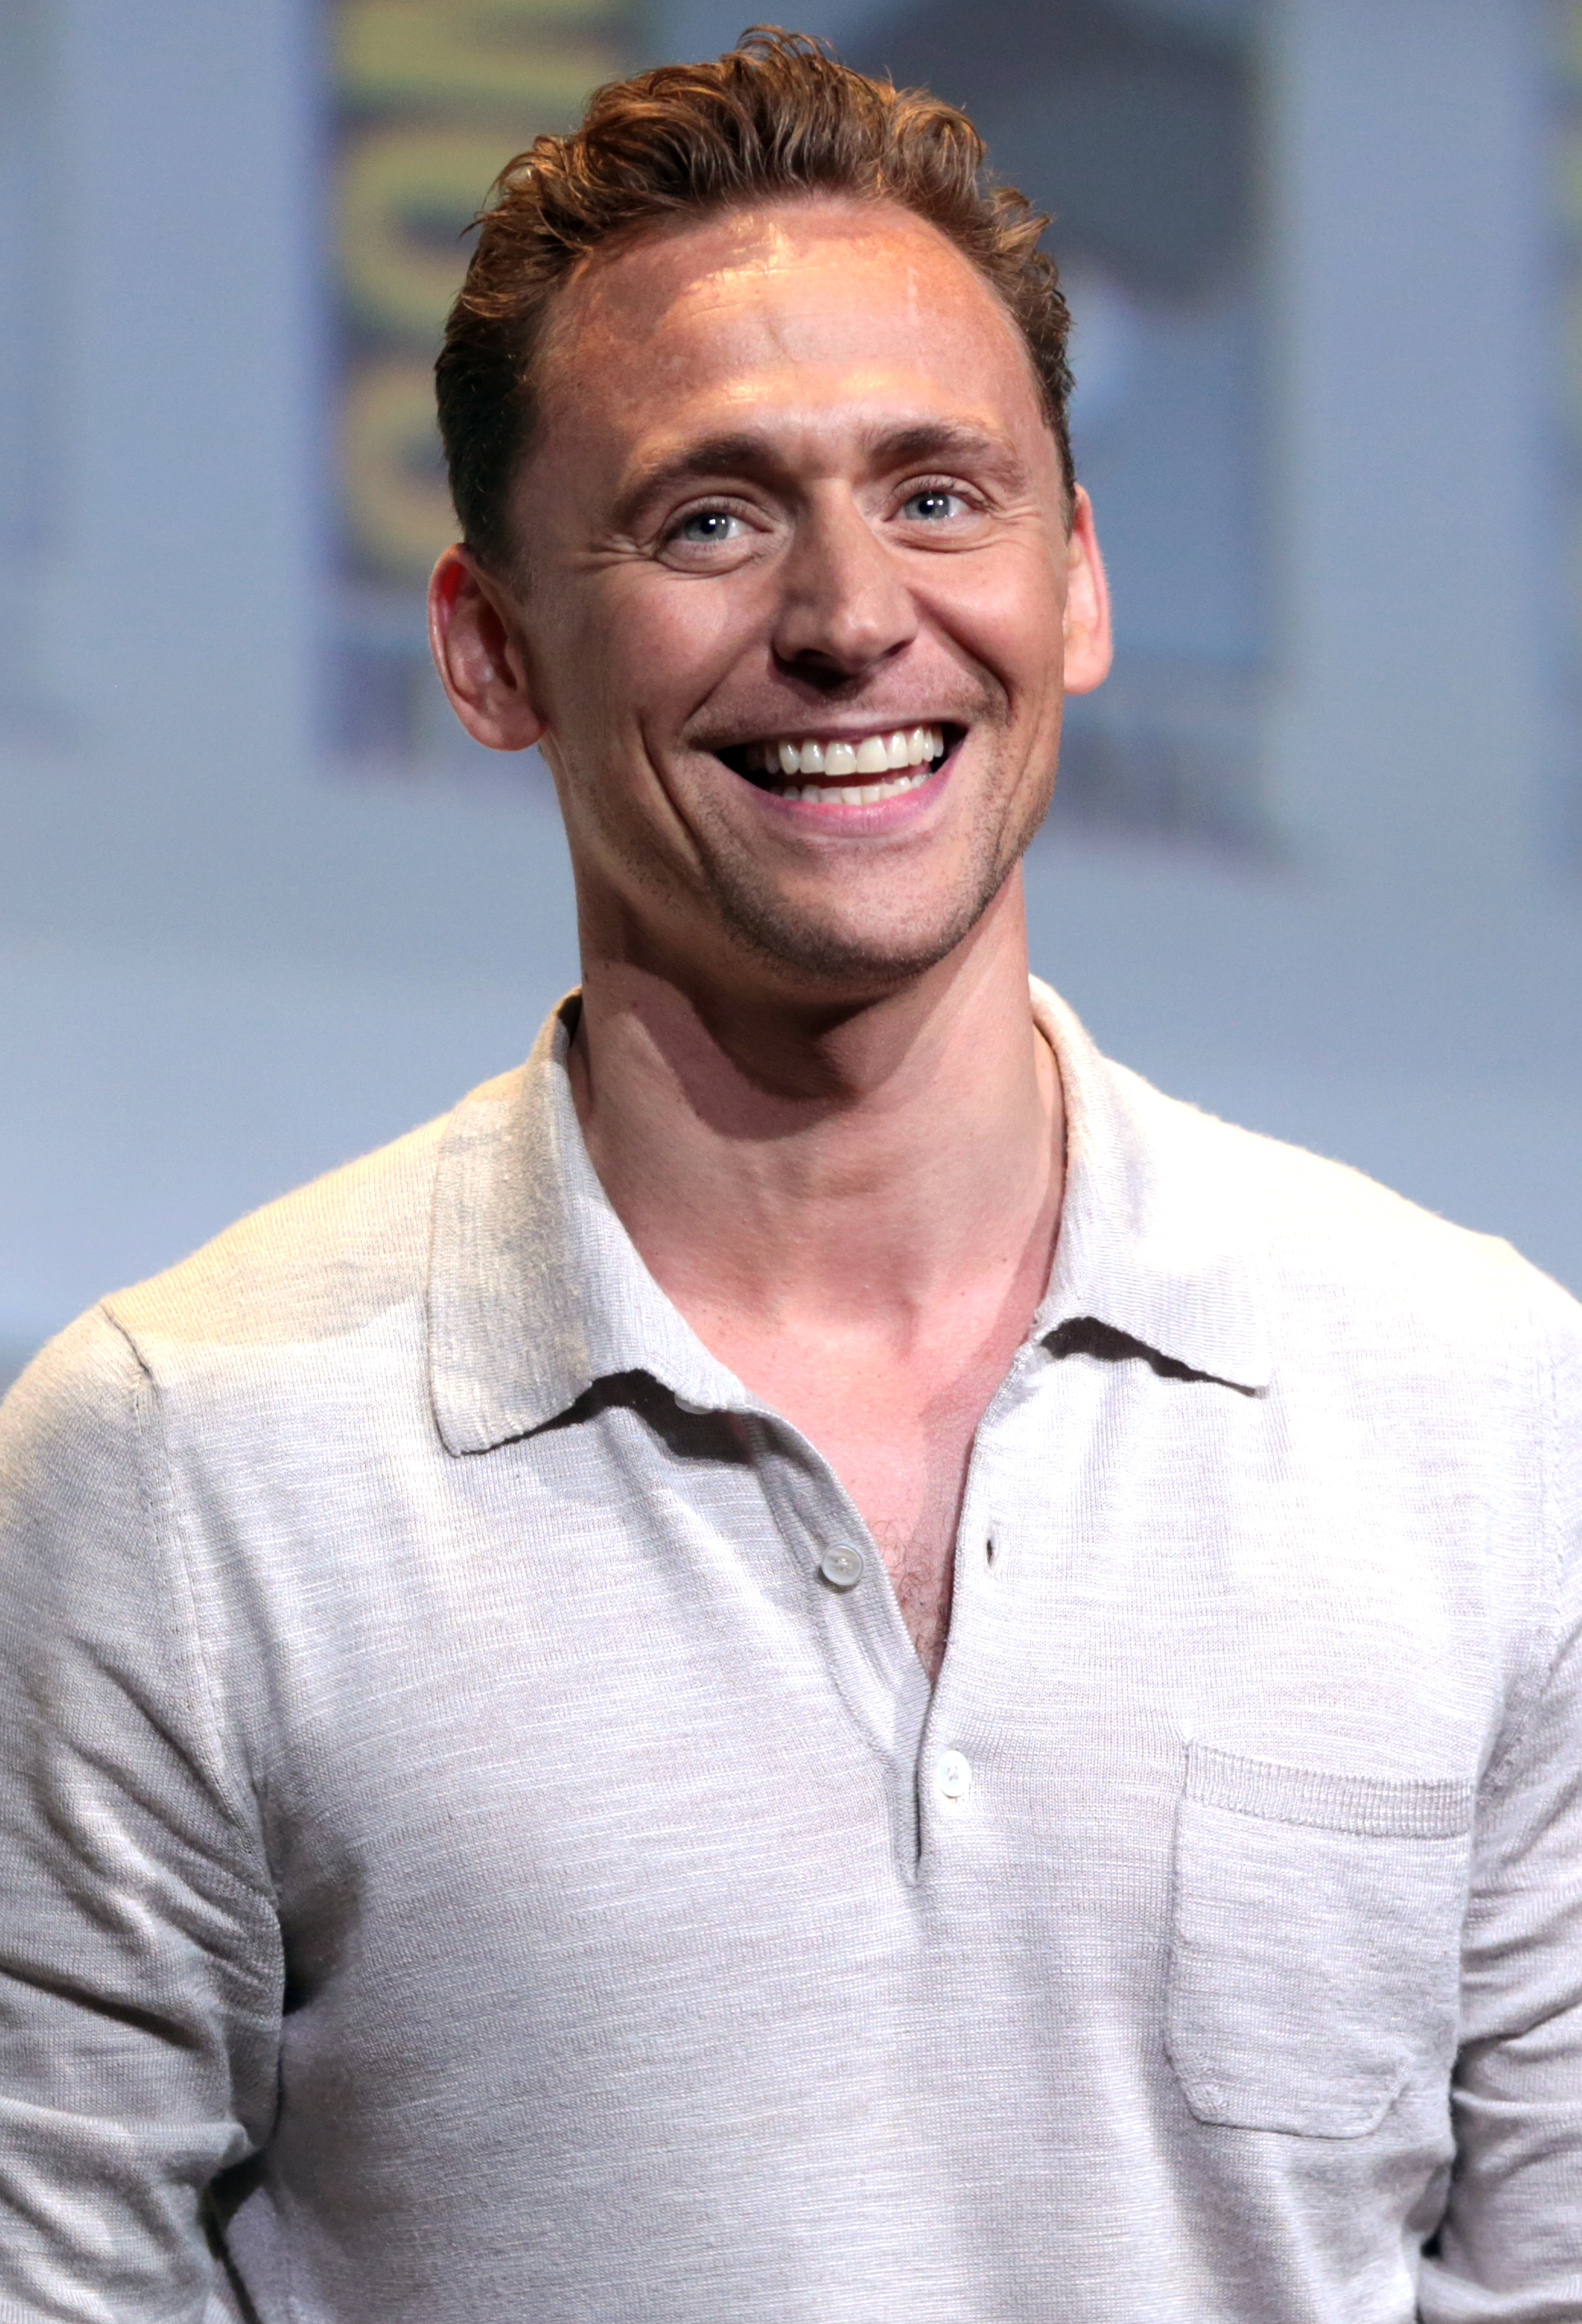 The 39-year old son of father (?) and mother(?) Tom Hiddleston in 2020 photo. Tom Hiddleston earned a million dollar salary - leaving the net worth at 8 million in 2020